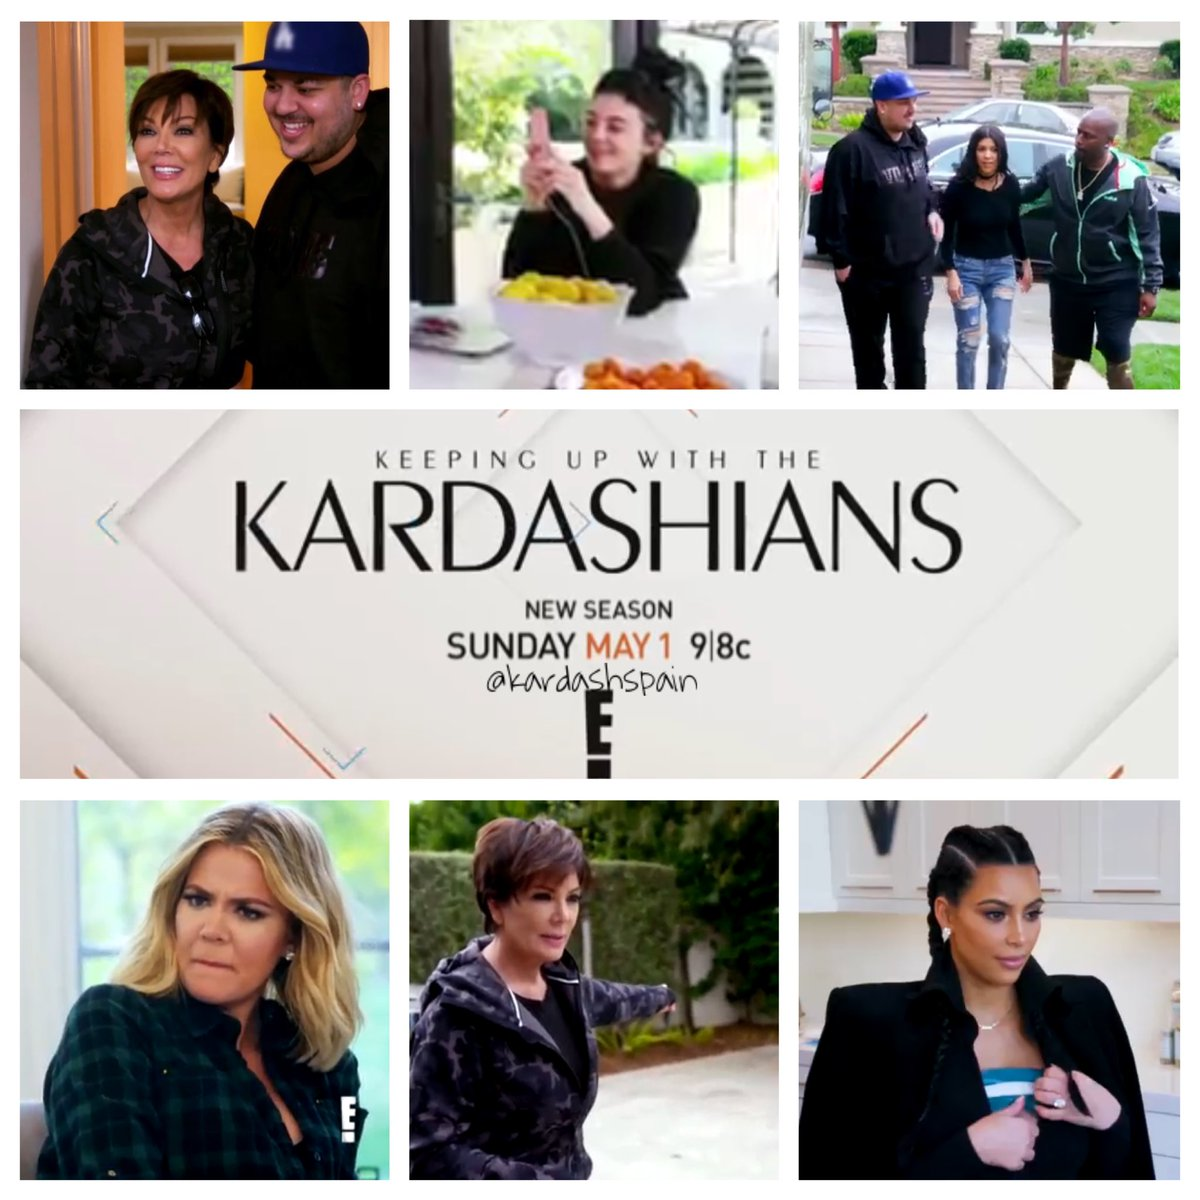 RT @kardashspain: Don't forget to tune #KUWTK tonight on E! at 9|8c @kourtneykardash @KimKardashian @khloekardashian @KrisJenner https://t.…